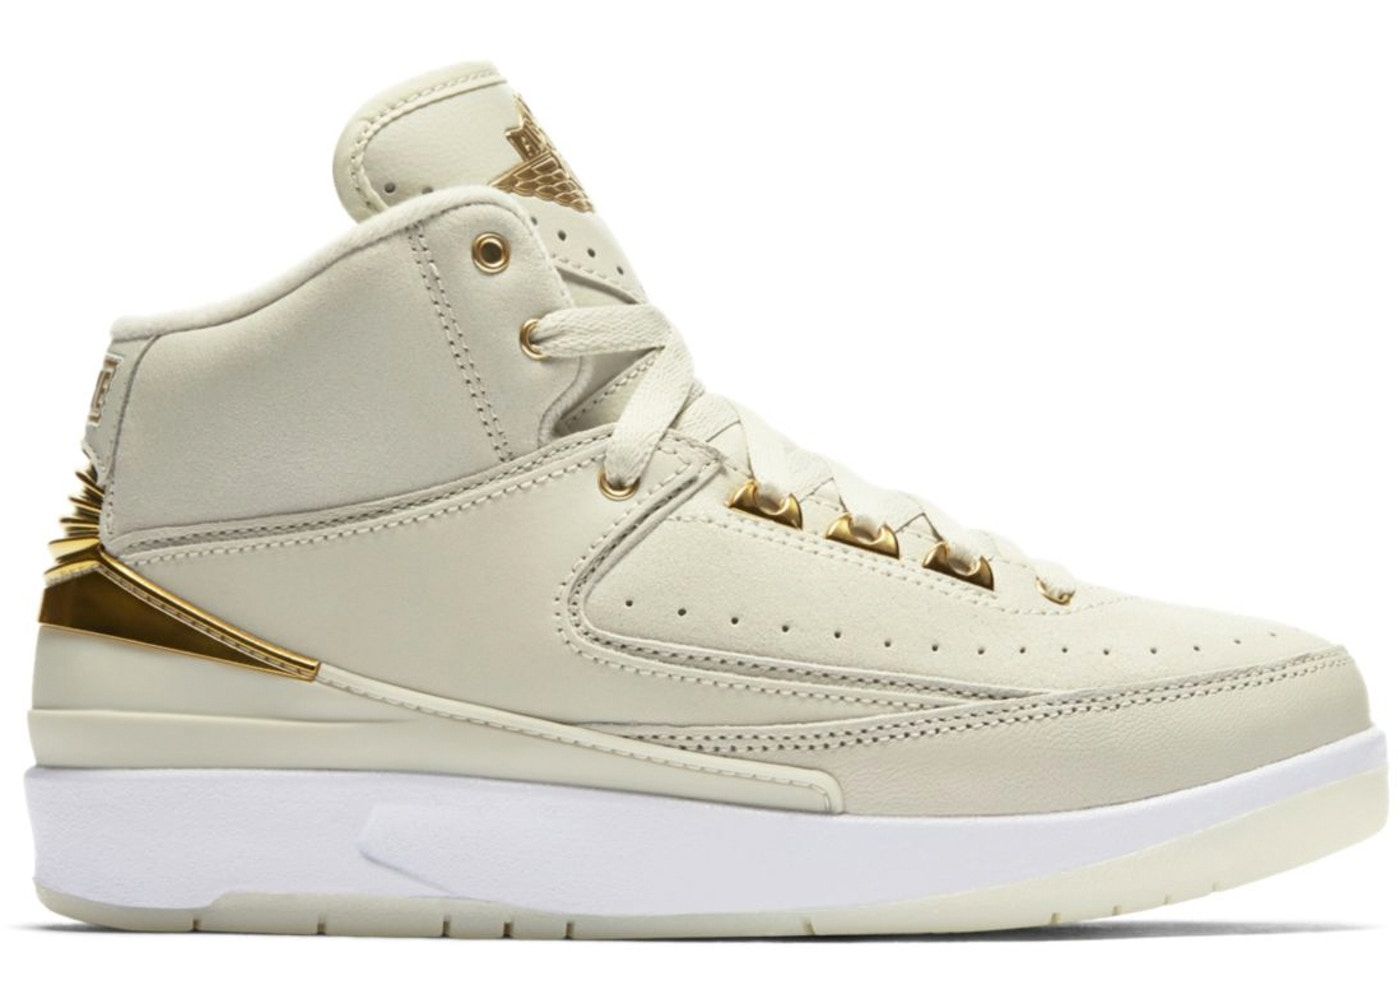 new products 63bc0 2b5a3 Buy Air Jordan 2 Shoes & Deadstock Sneakers